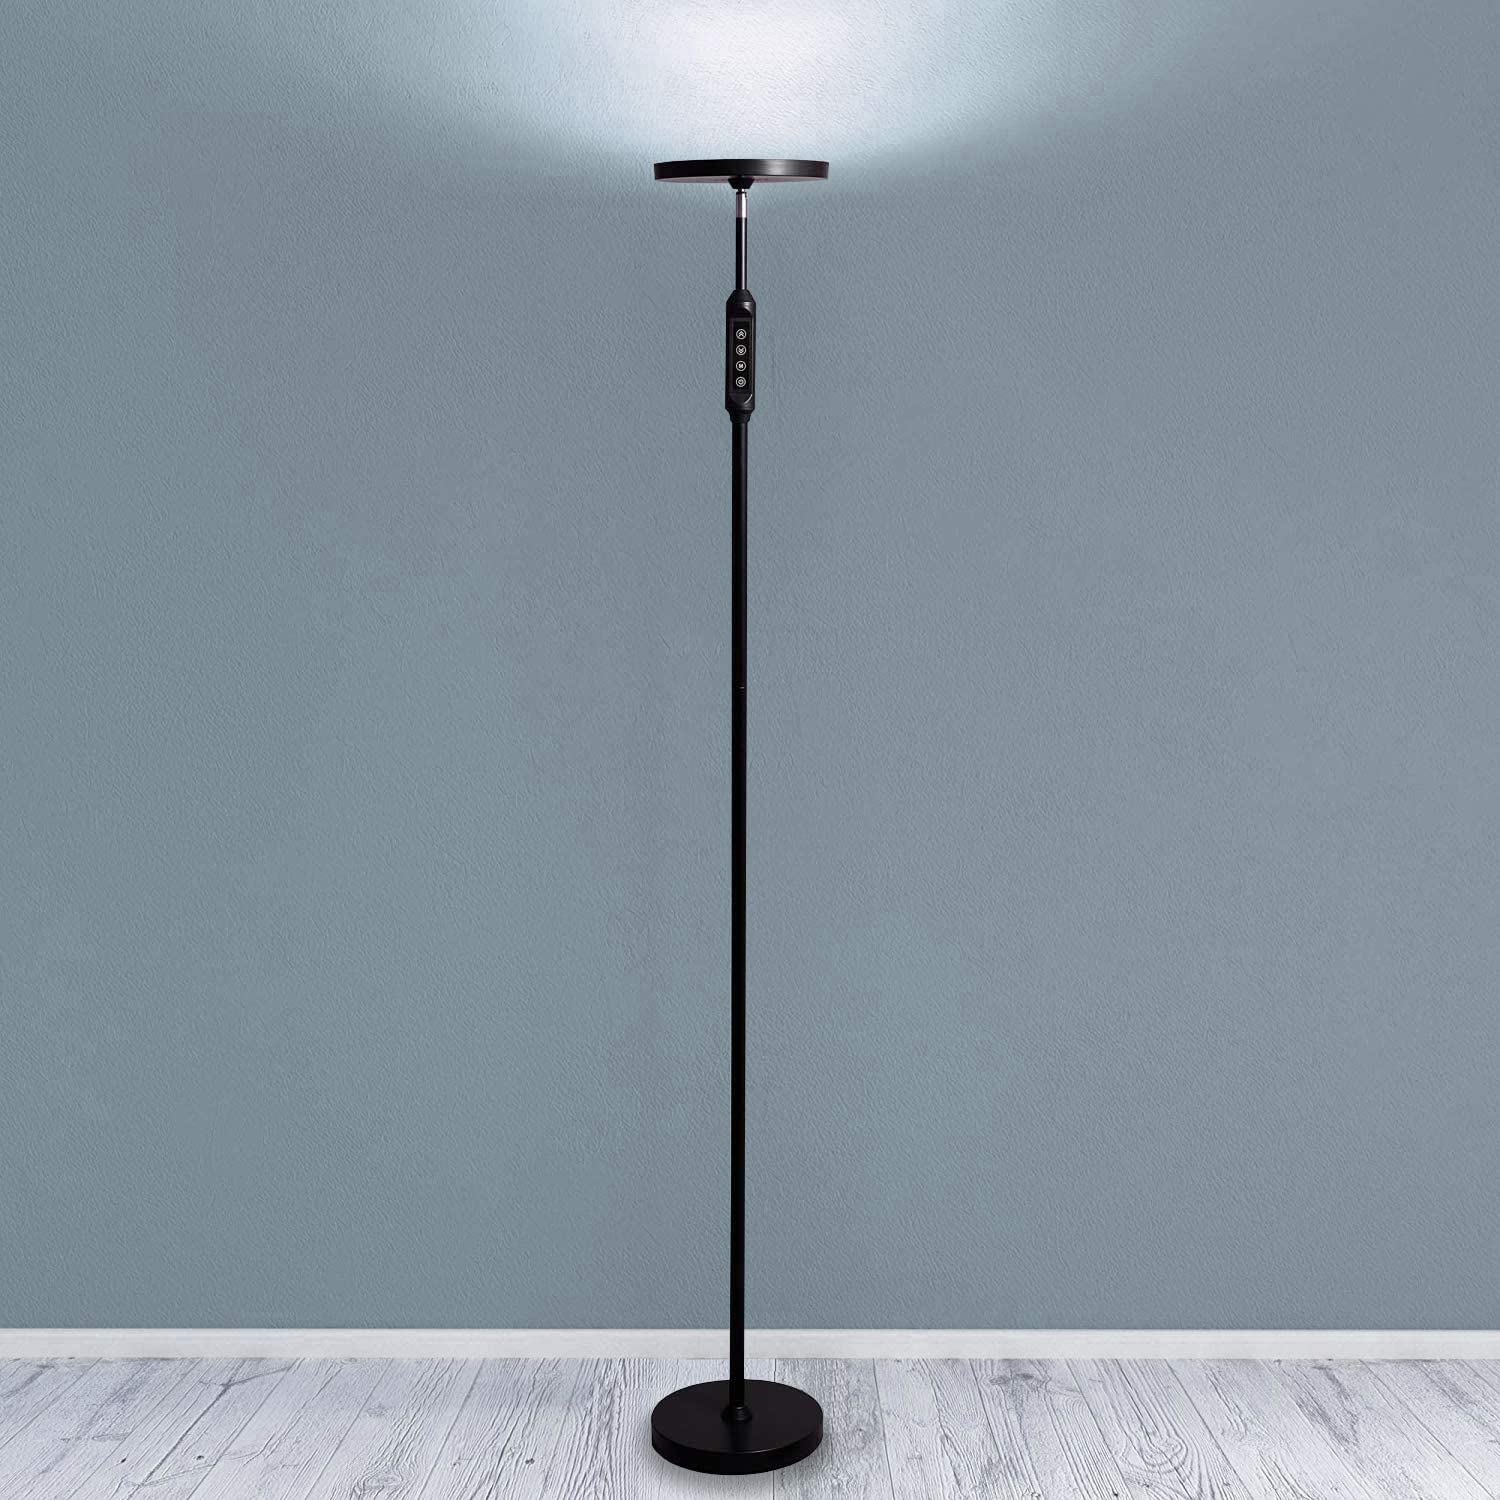 Daylight LED Floor Standing Lamp – Tall Modern Reading Task Uplight – 24W Adjustable Warm Cool Super Bright Natural Light Torchiere for Living Room, Dorm, Bedroom or Office – Dimmable – Black